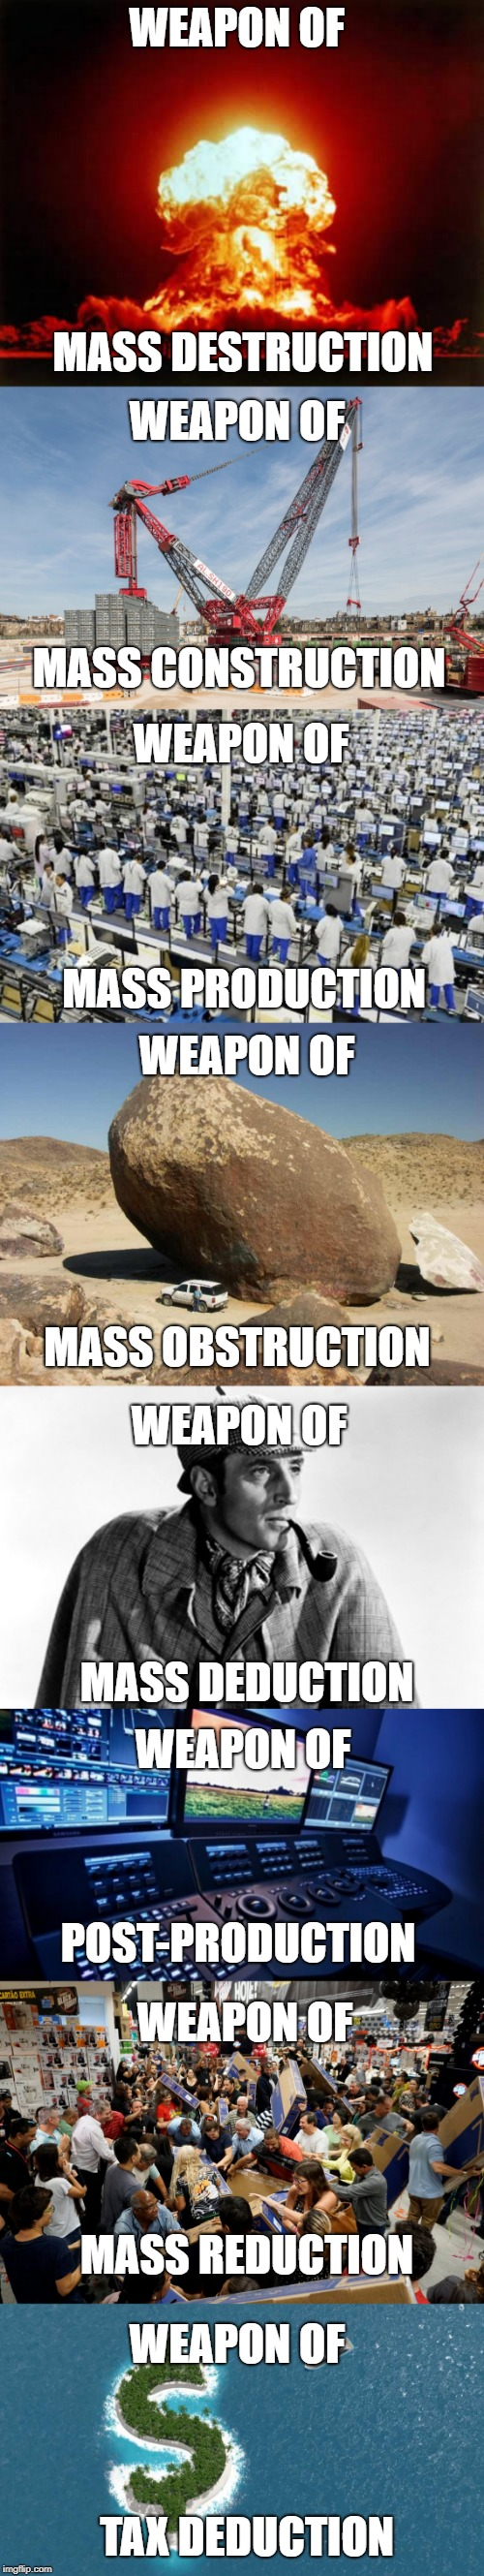 Weapon of Meme Construction | WEAPON OF MASS CONSTRUCTION TAX DEDUCTION WEAPON OF MASS REDUCTION WEAPON OF POST-PRODUCTION WEAPON OF WEAPON OF MASS DEDUCTION WEAPON OF MA | image tagged in memes,nuclear explosion,construction,production,funny,rhymes | made w/ Imgflip meme maker